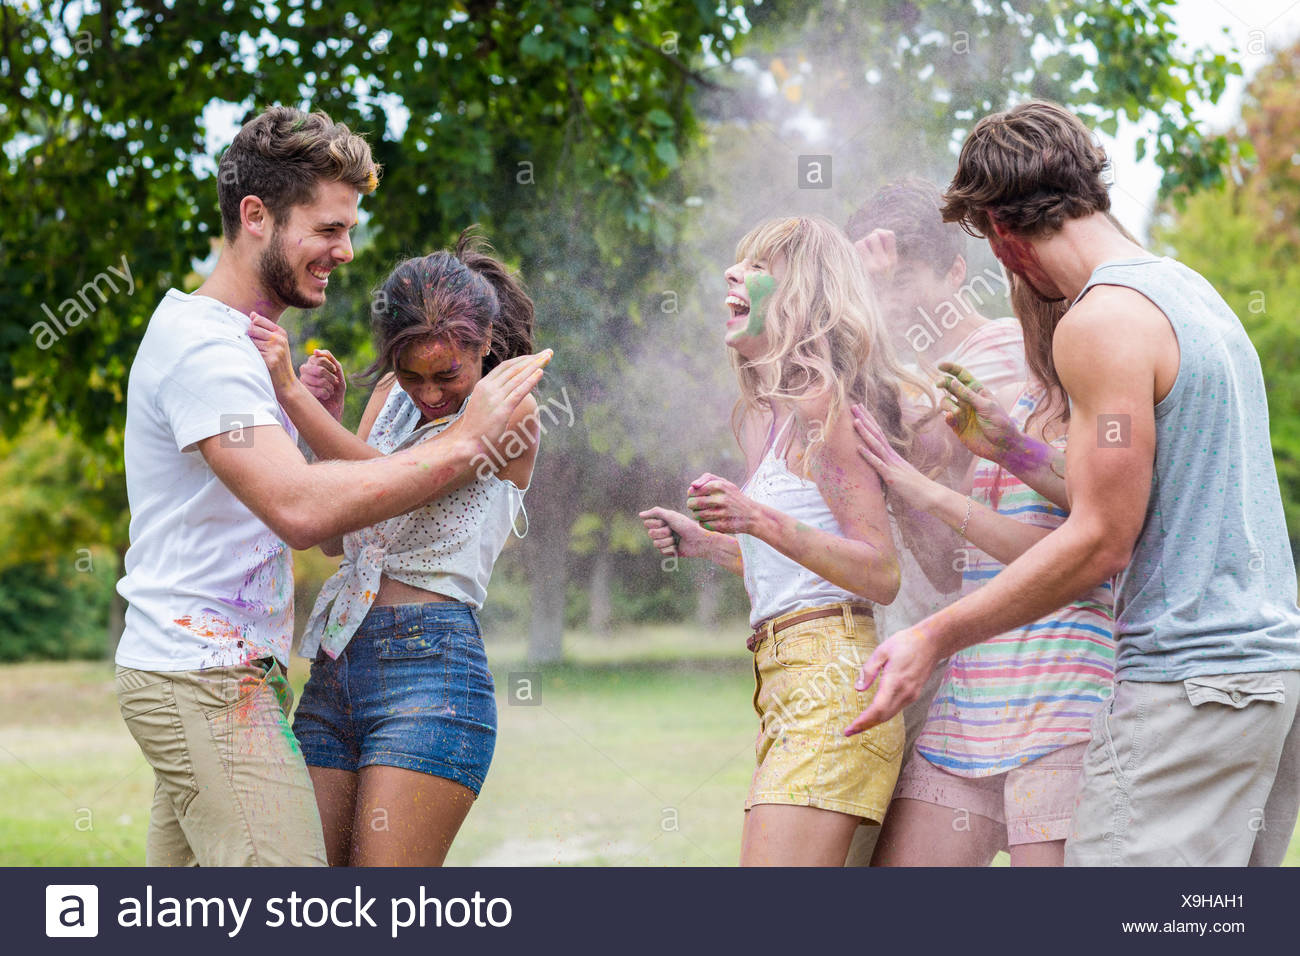 Happy friends throwing powder paint - Stock Image